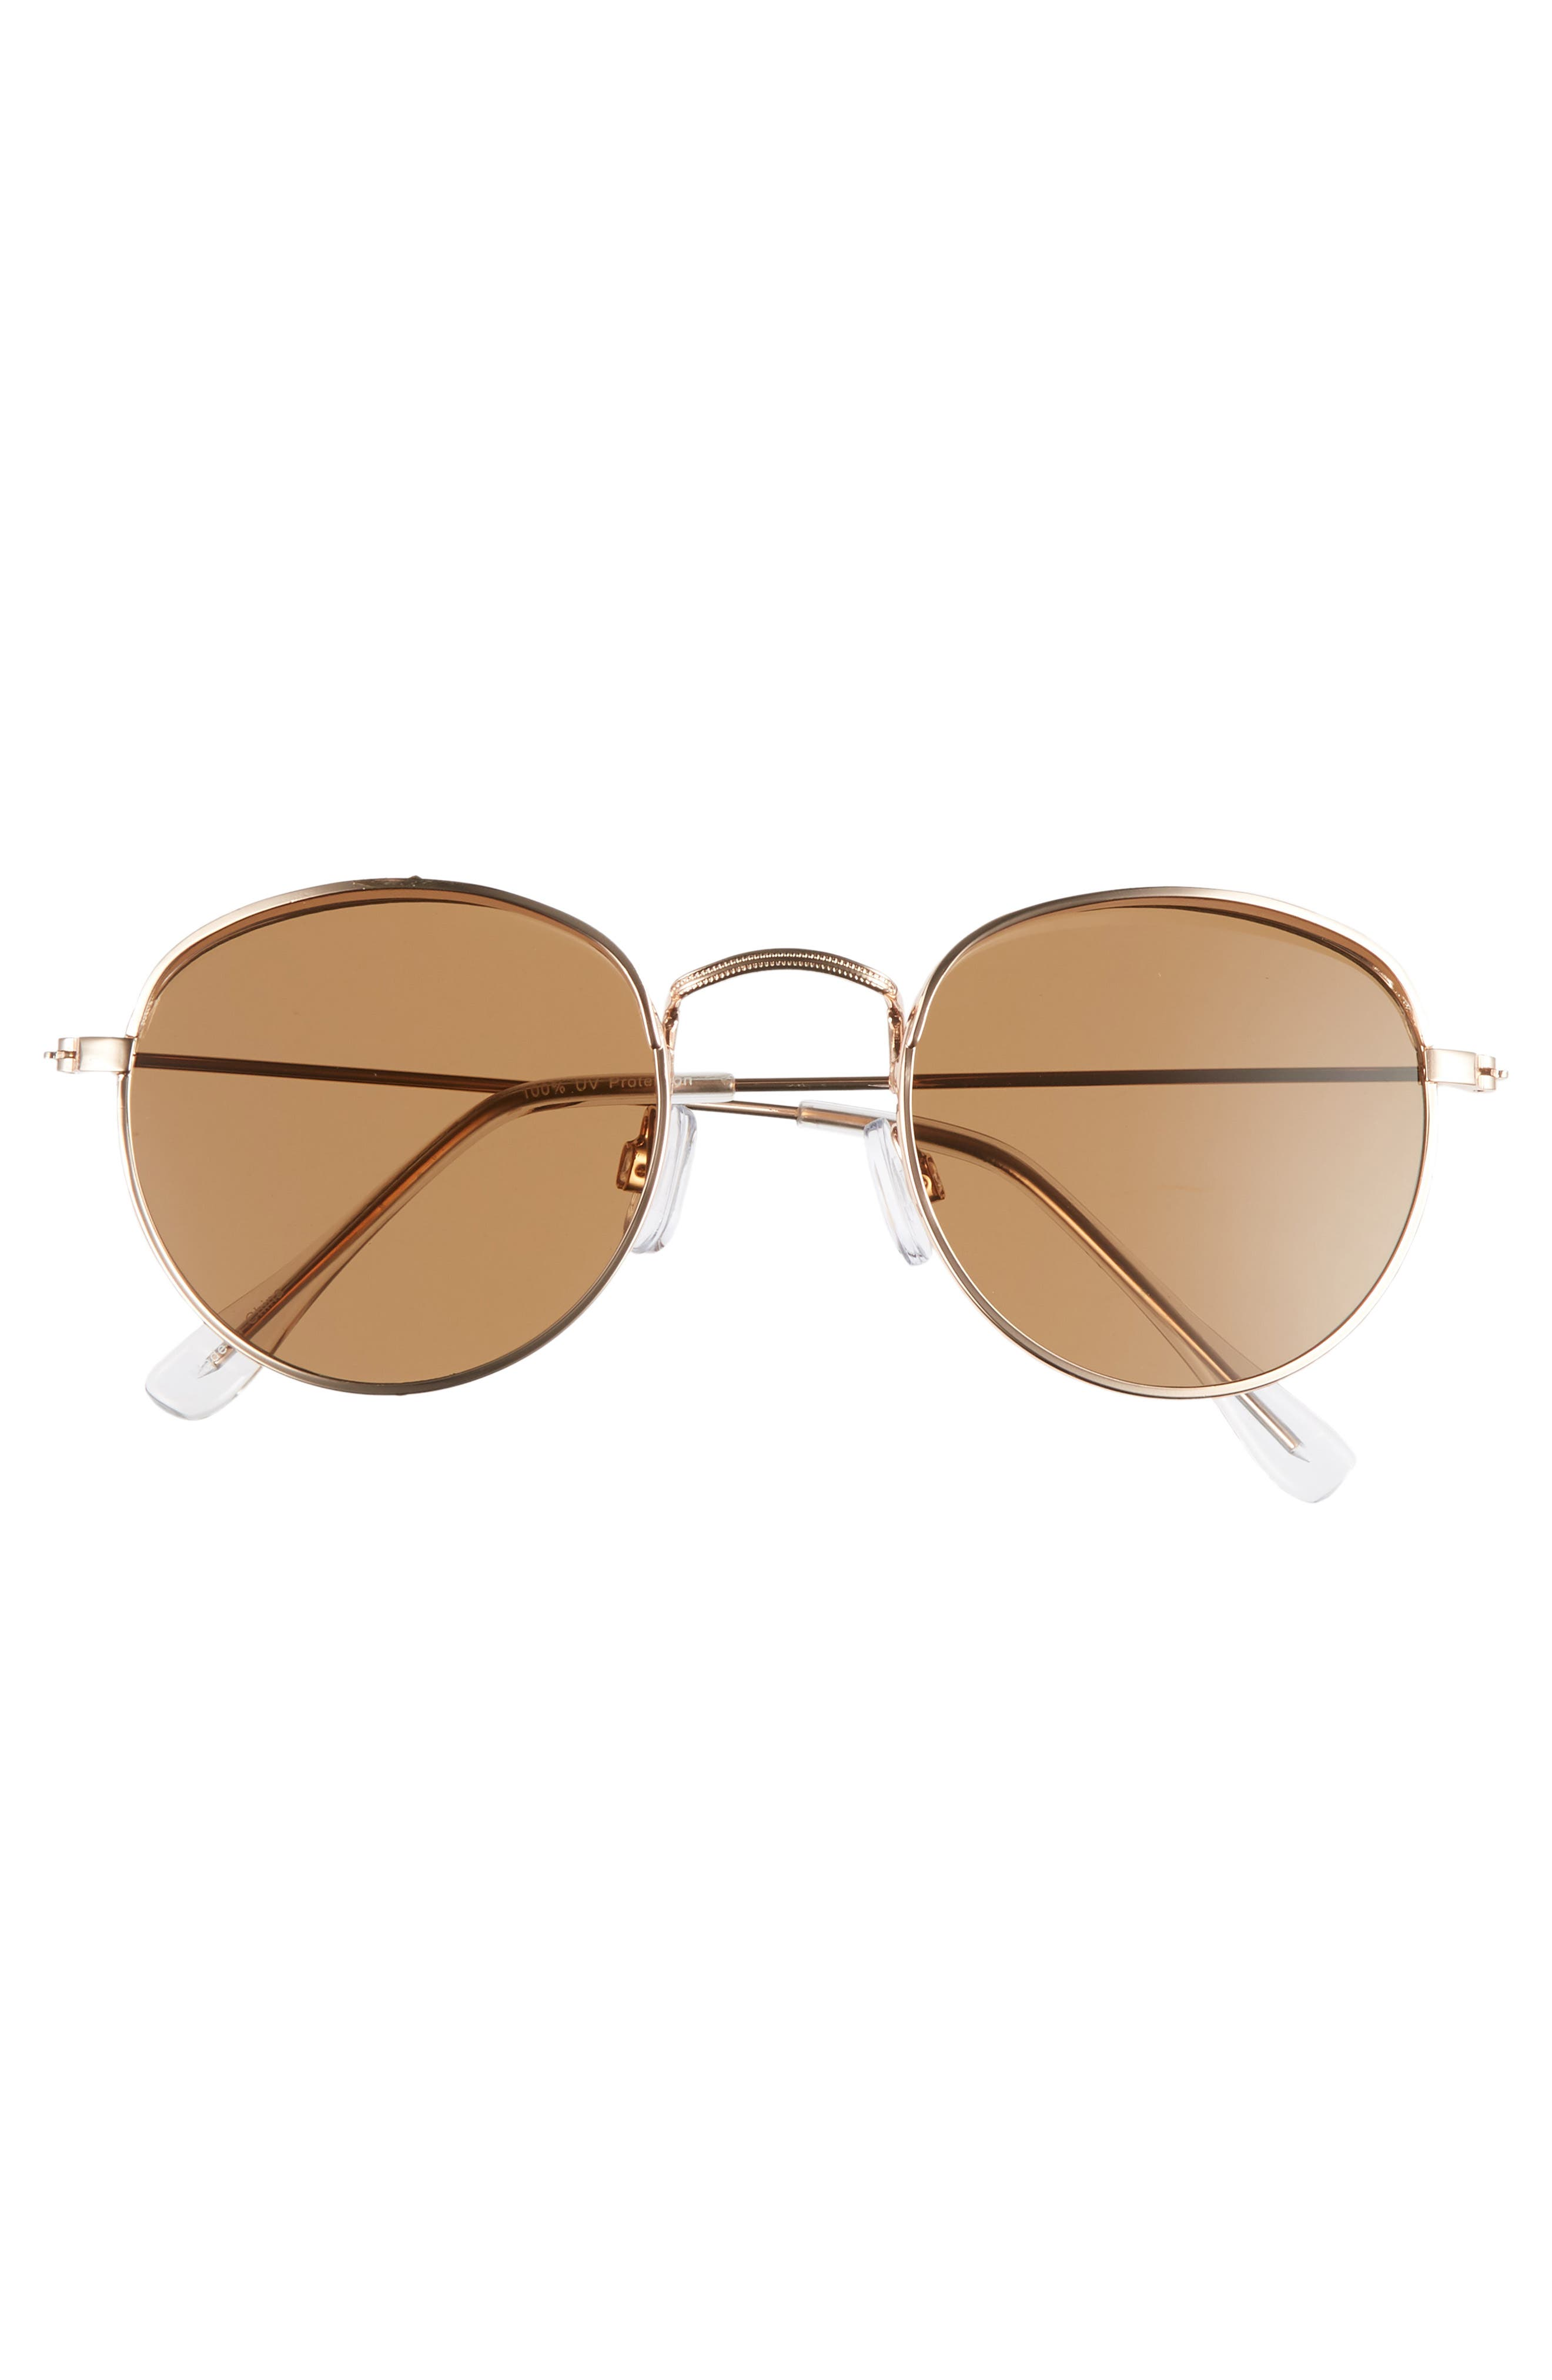 50mm Round Sunglasses,                             Alternate thumbnail 3, color,                             GOLD/ BROWN